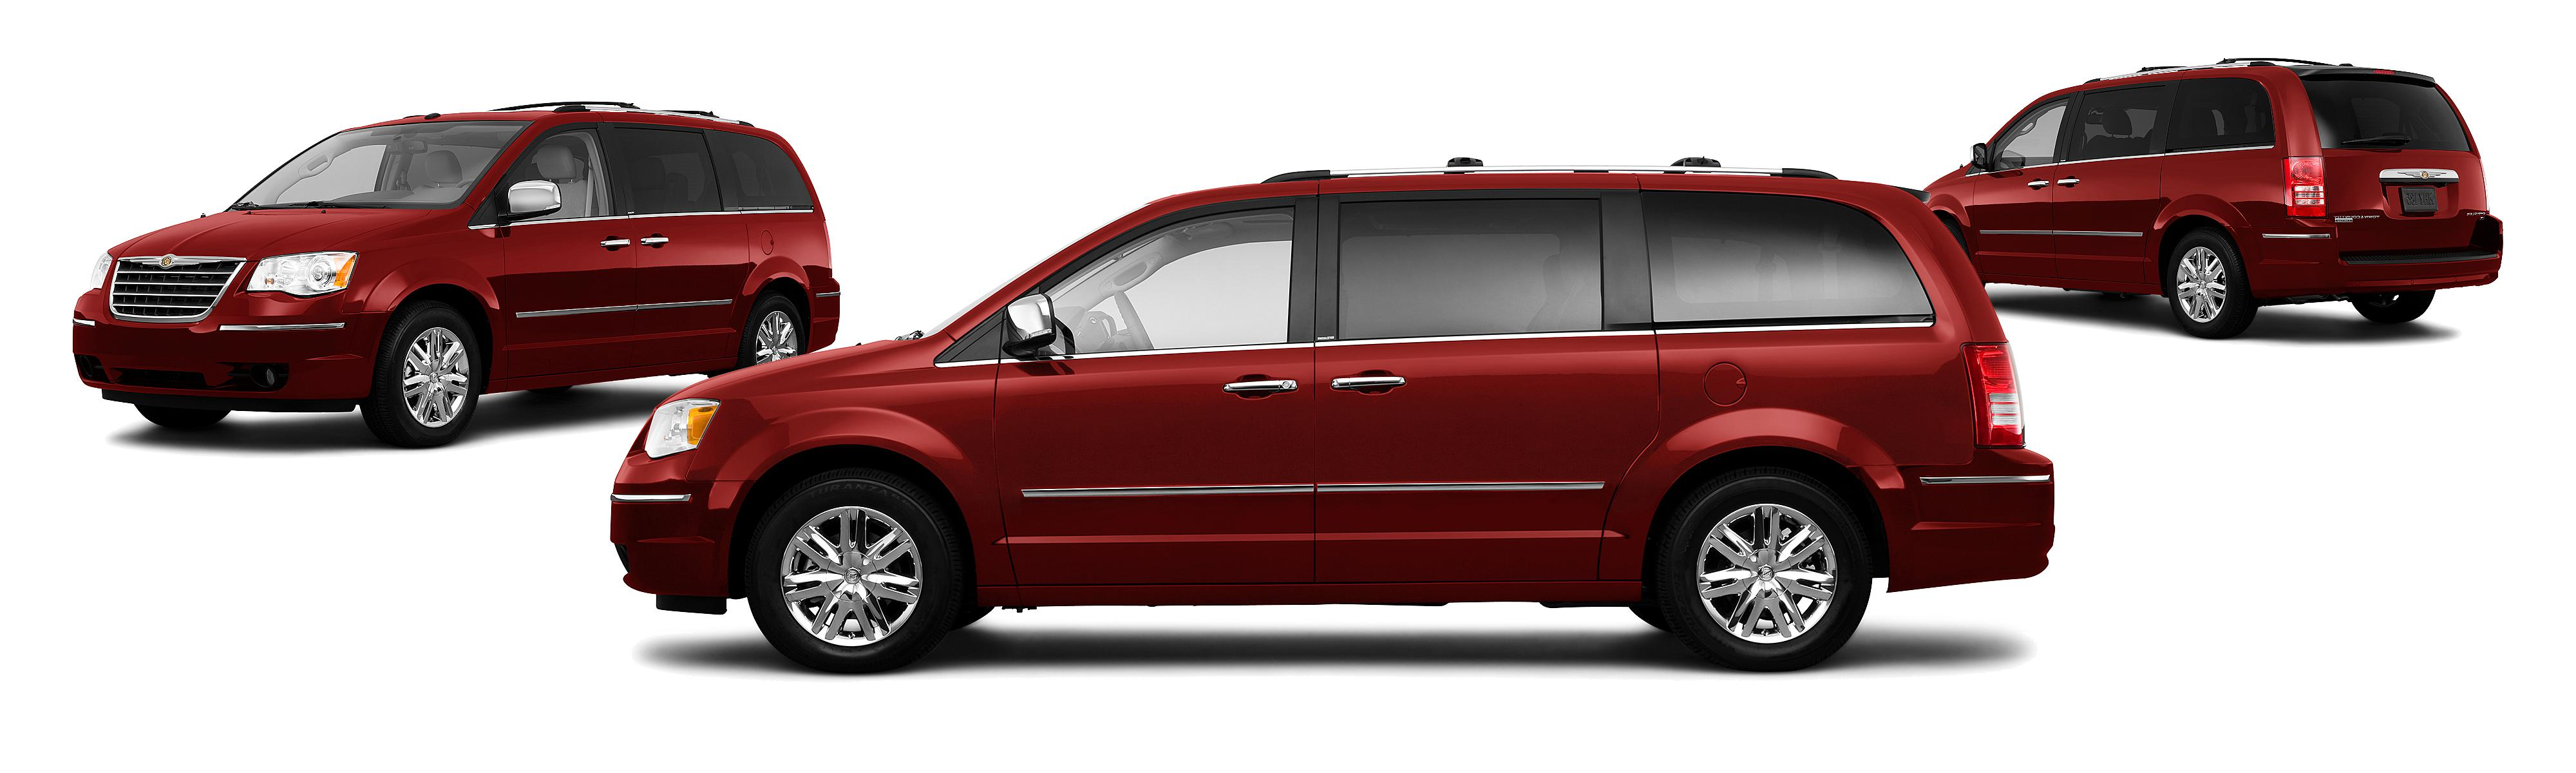 2010 Chrysler Town And Country Limited 4dr Mini Van Research